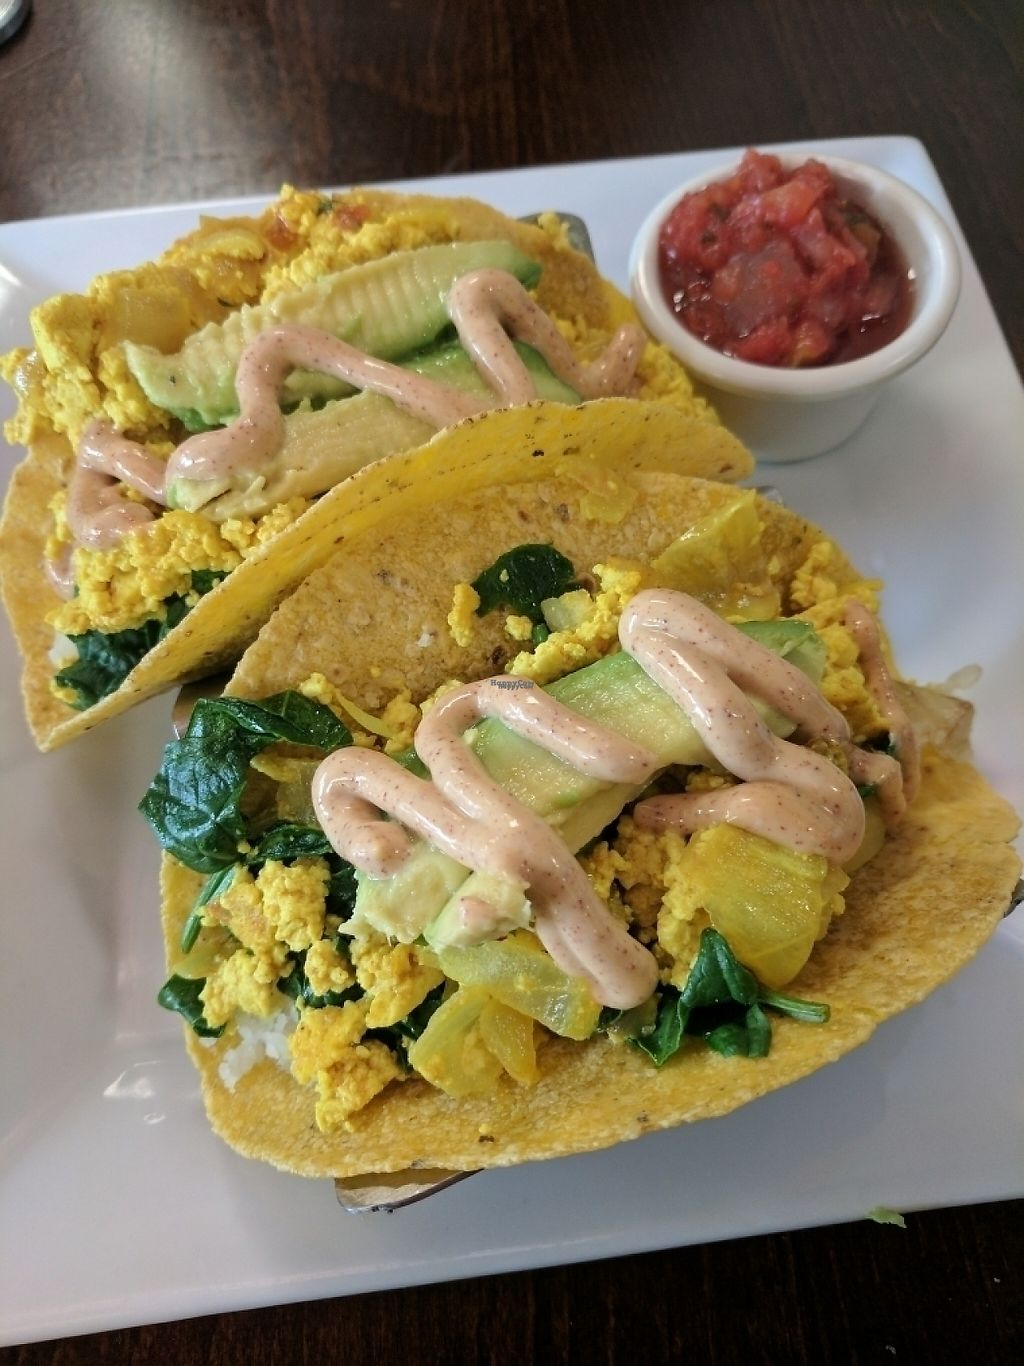 """Photo of Plant Food Supper Club  by <a href=""""/members/profile/IdyVegan"""">IdyVegan</a> <br/>Tofu scramble tacos <br/> March 20, 2017  - <a href='/contact/abuse/image/82687/238607'>Report</a>"""